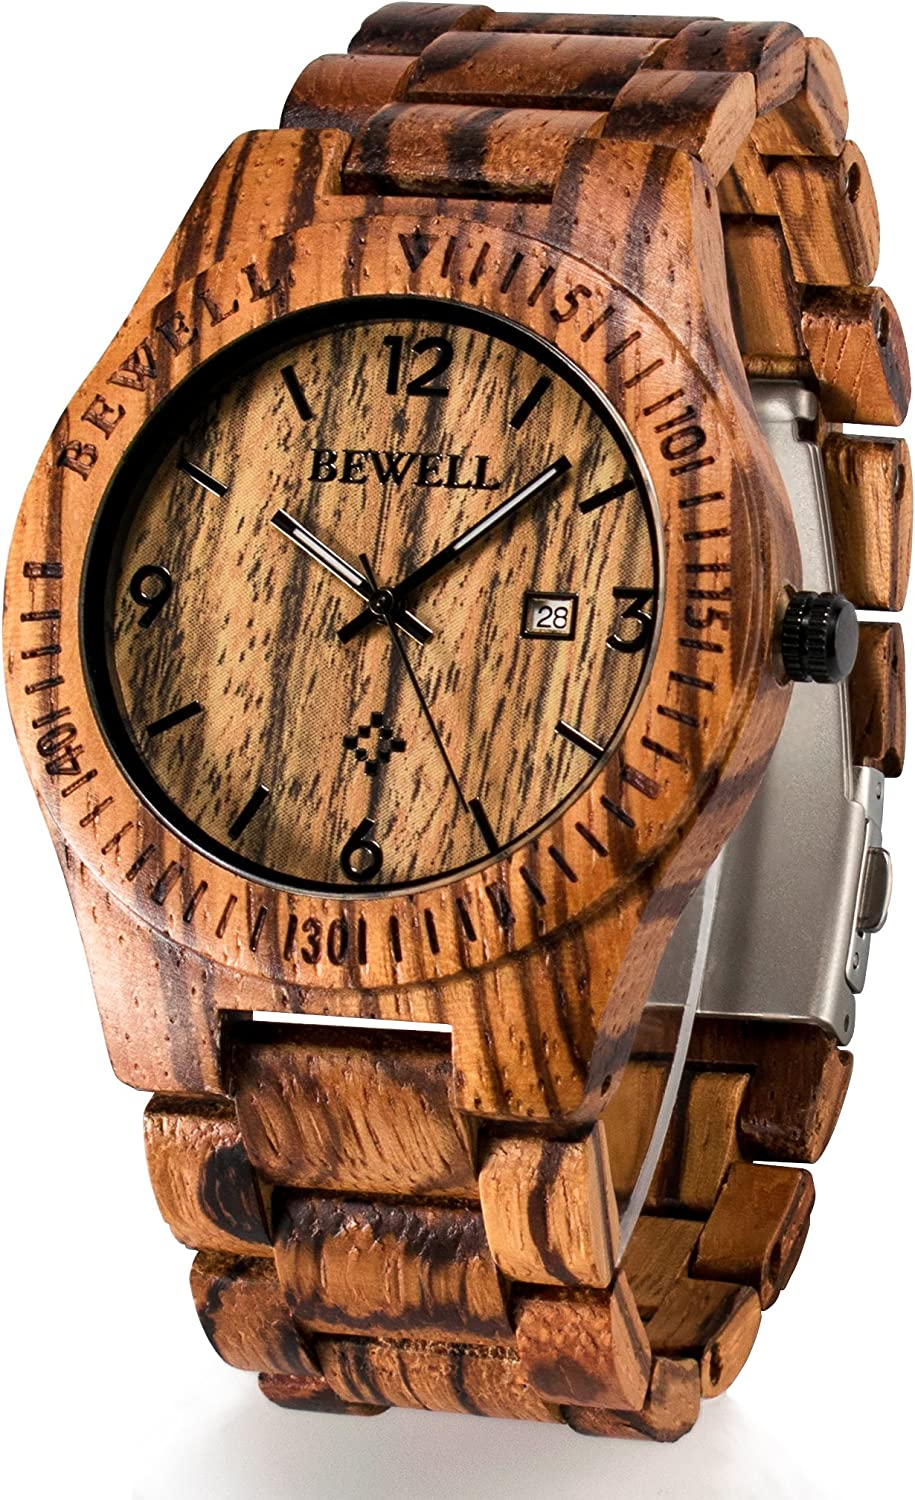 Image result for Bewell W086B Men's Wooden Watch